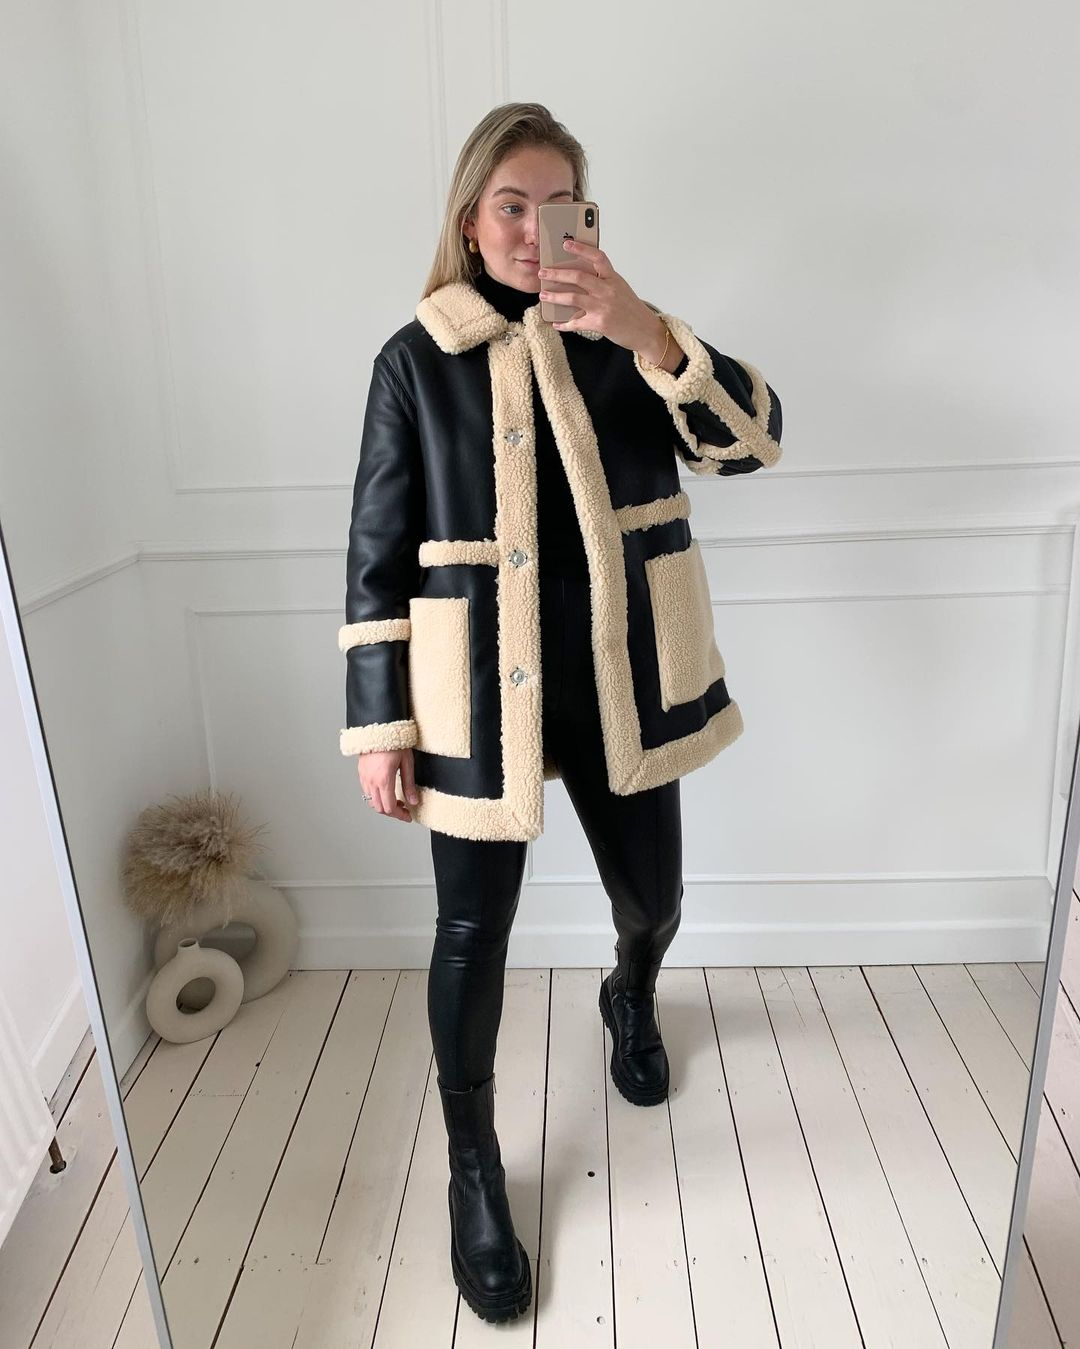 A Shearling Jacket is a Must-Buy for Fall and Winter